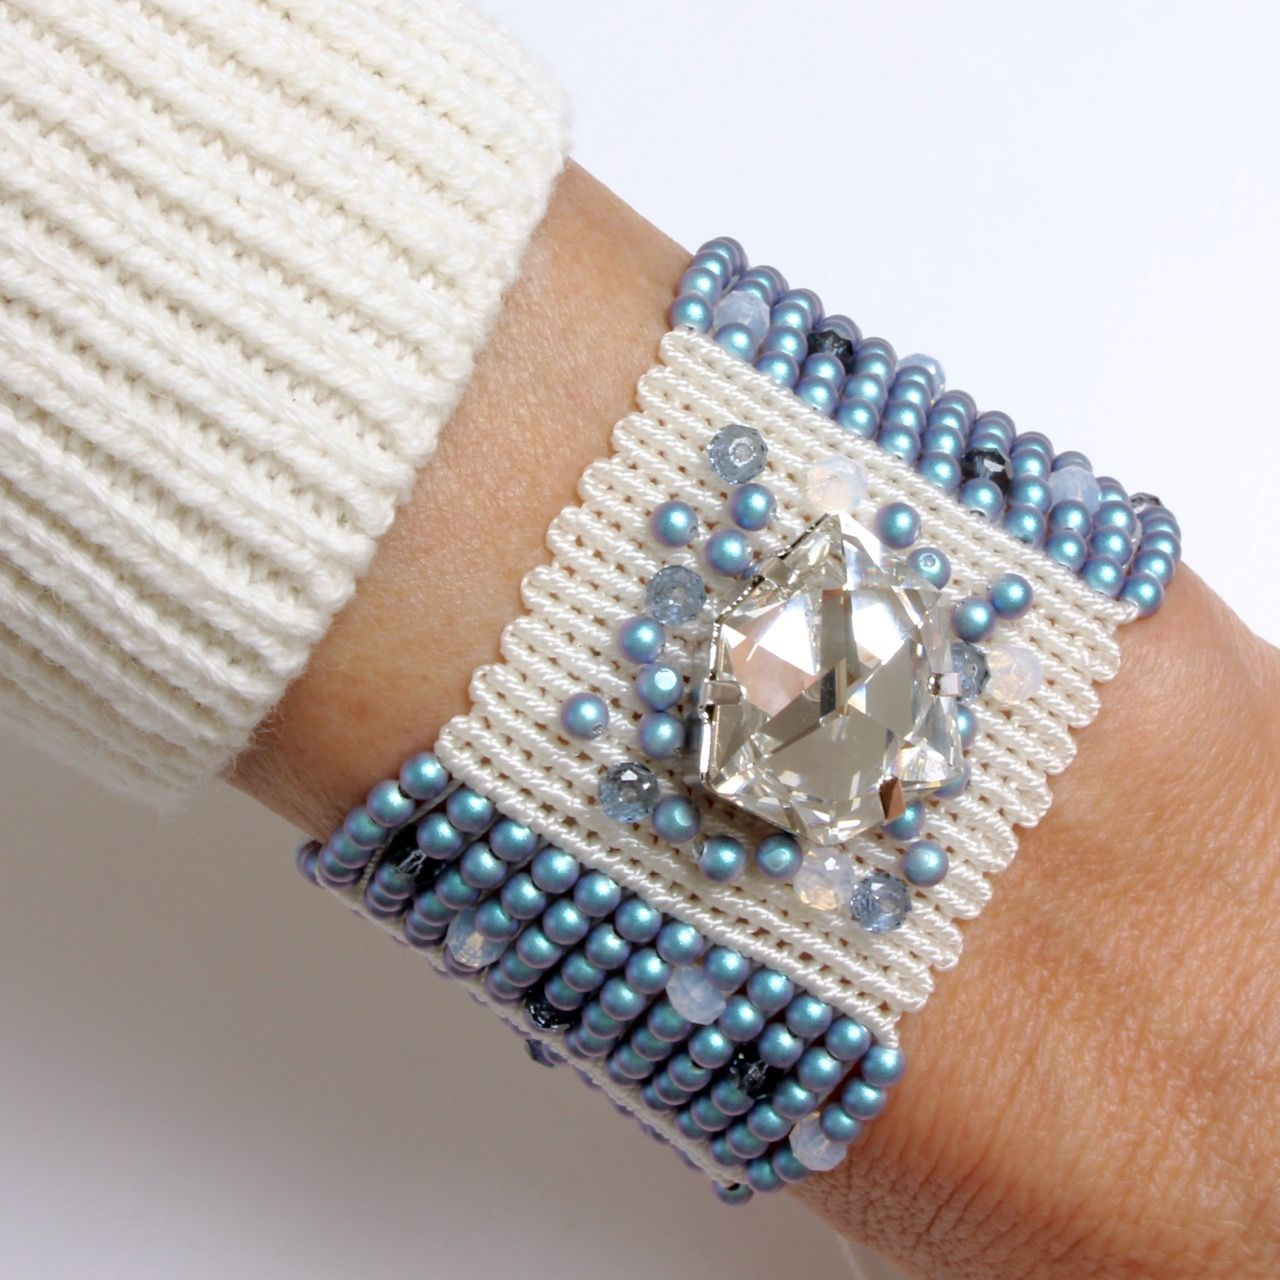 A Swarovski Innovation s/s 2018 design using tiny pearls, rondelle crystals and the fabulous tilted dice fancy stone. www.dorothywood.co.uk